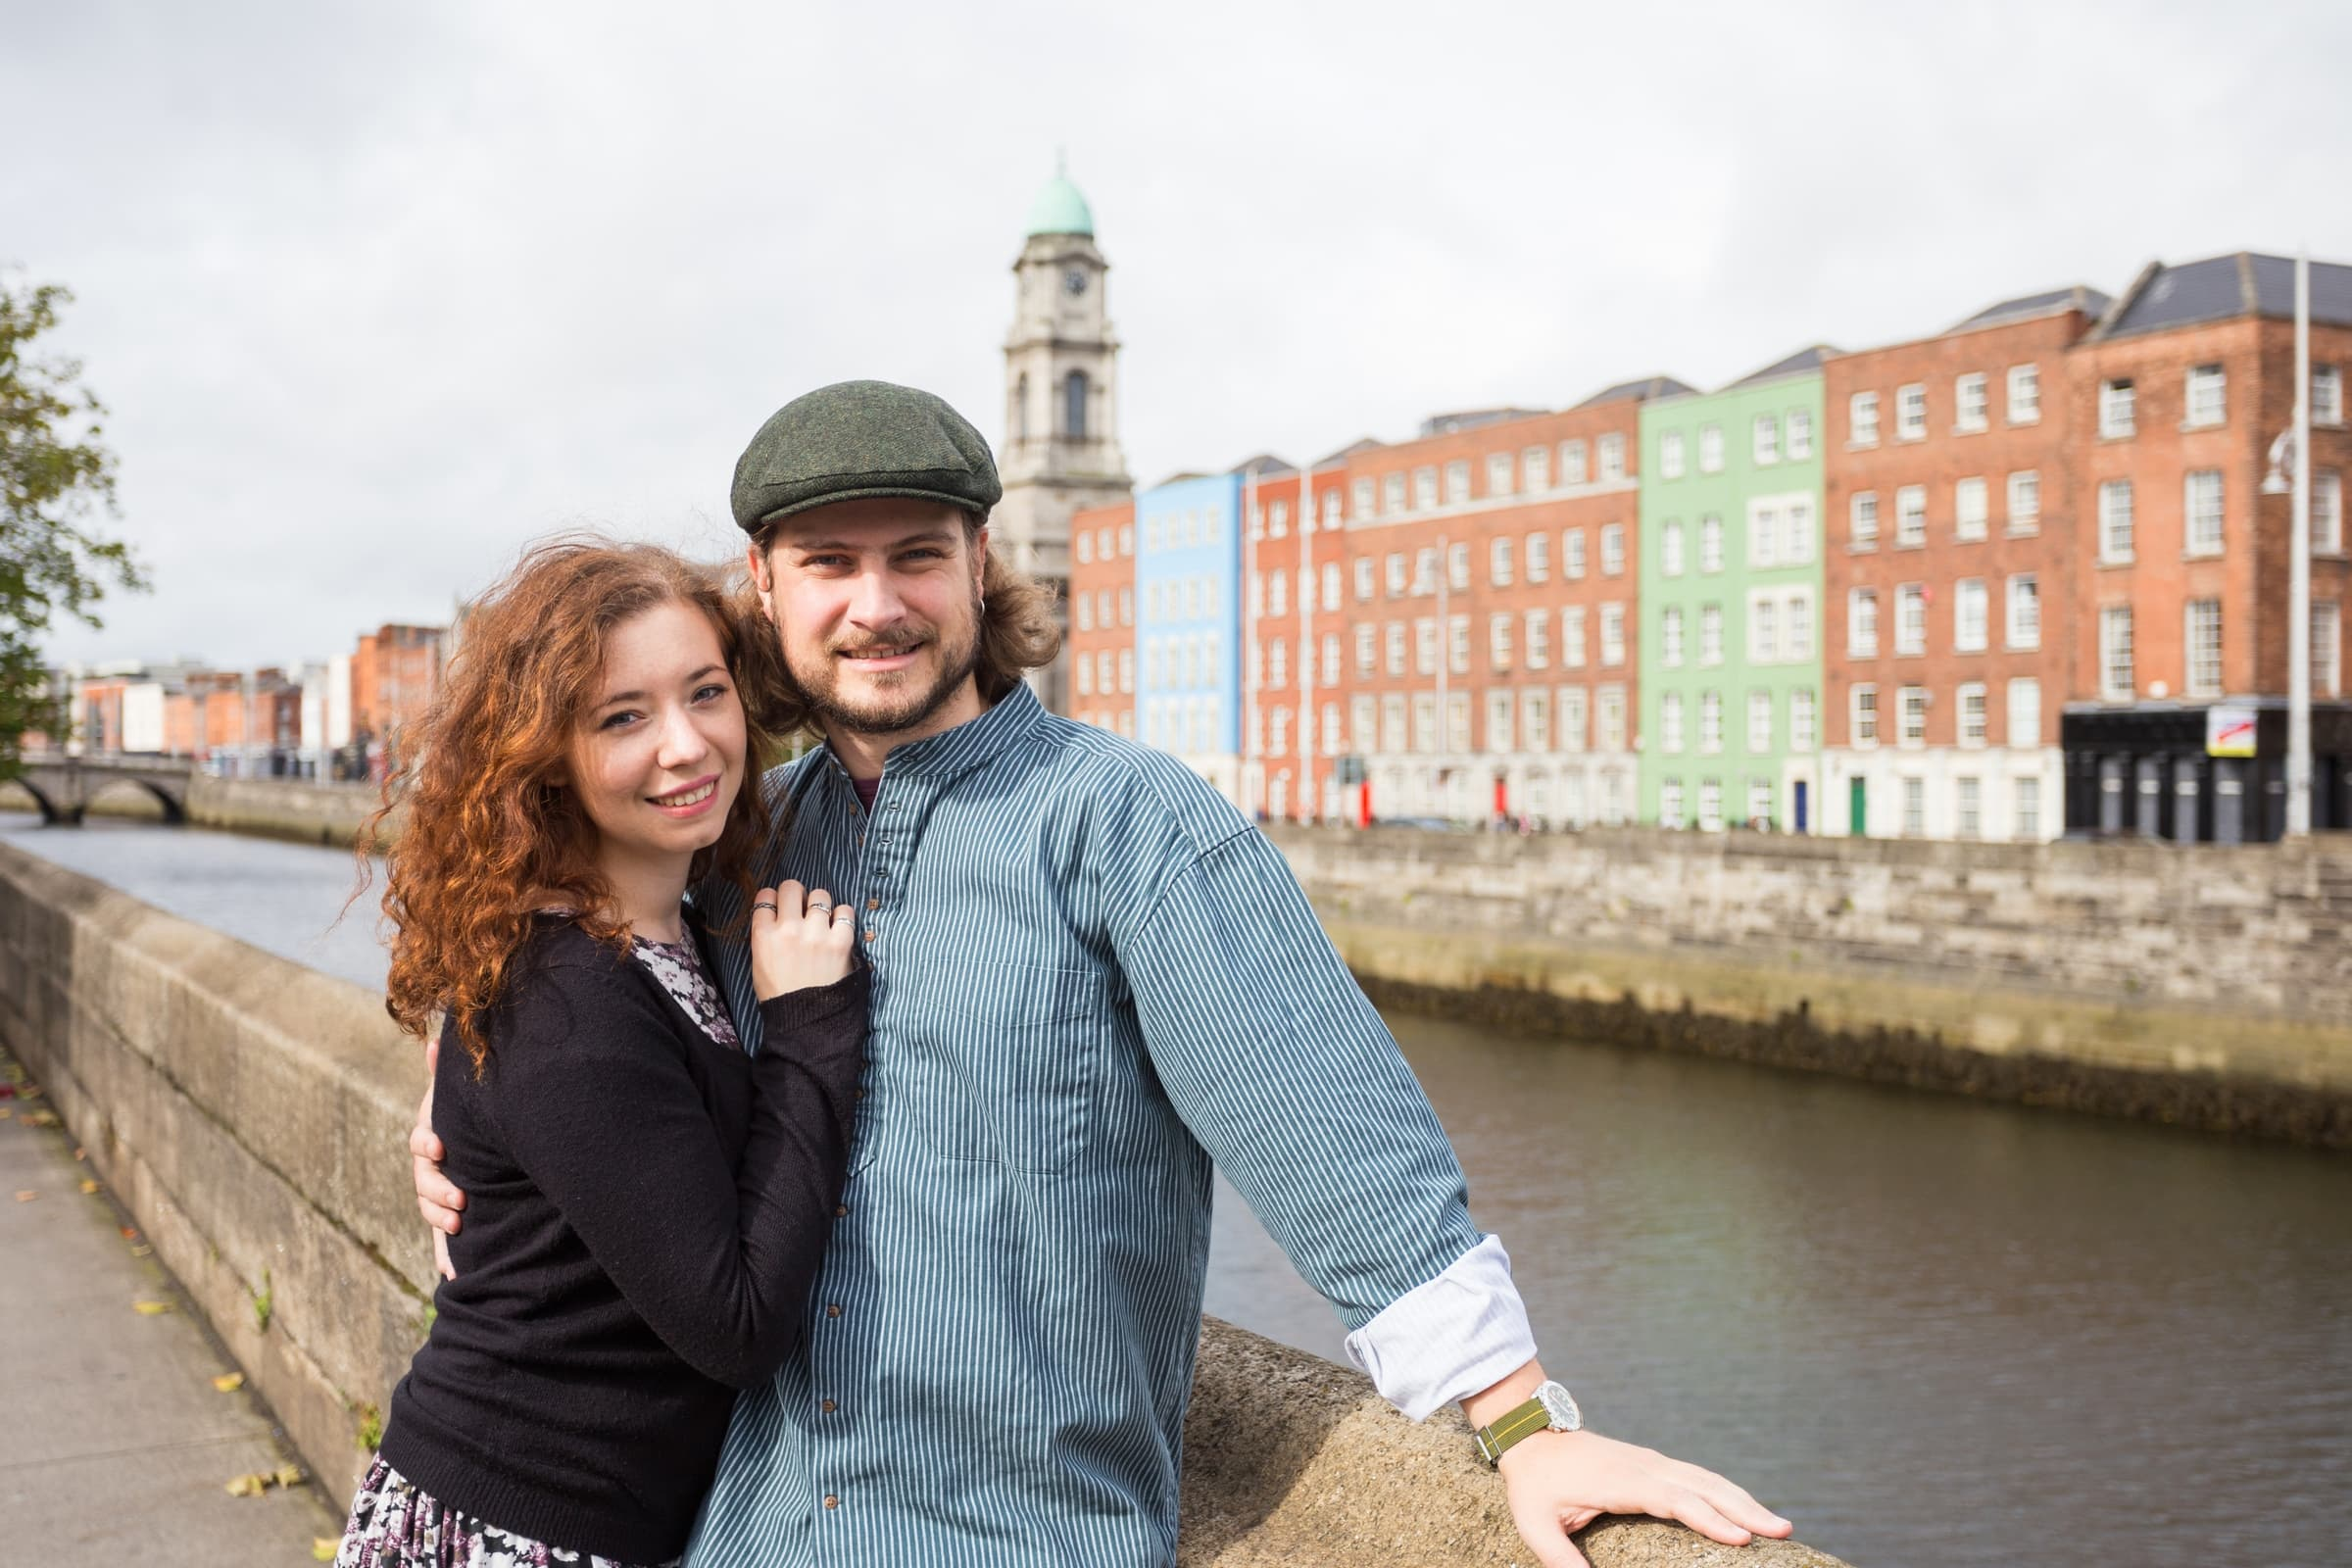 Couple posing in Dublin.